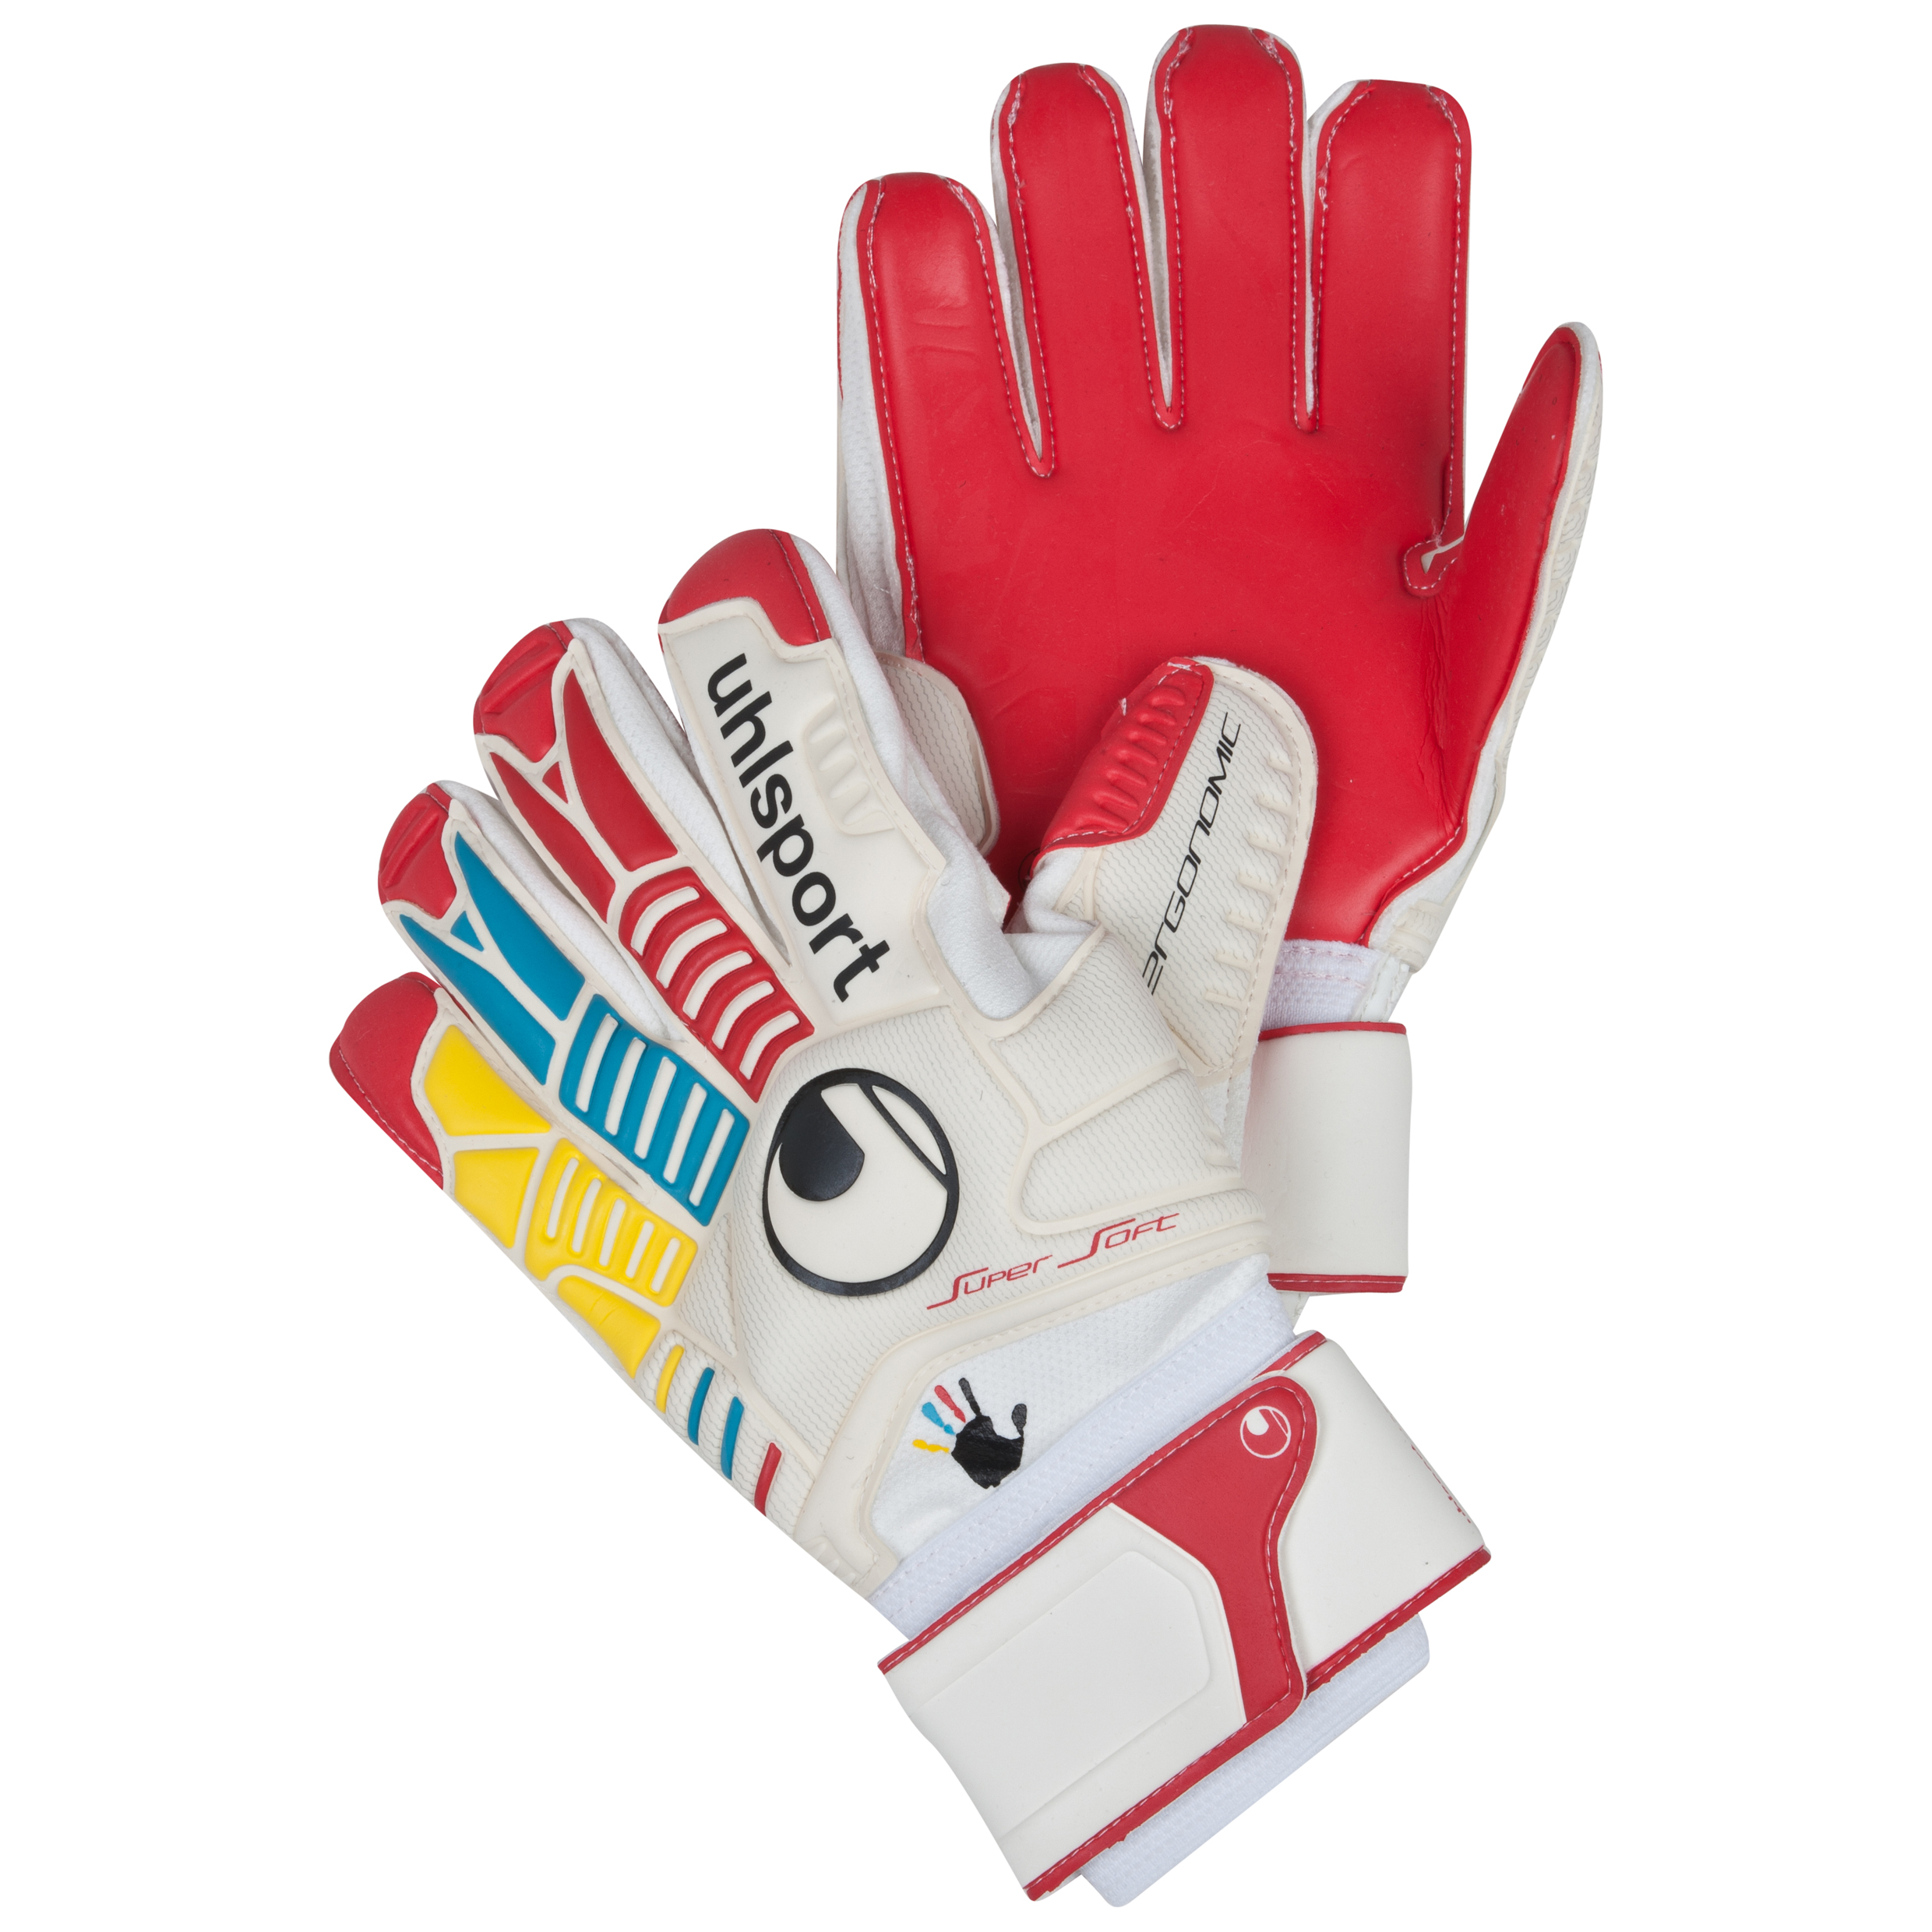 Uhlsport Ergonomic Supersoft 'Wir Tun Was' Goalkeeper Gloves - White/Red/Yellow/Cyan